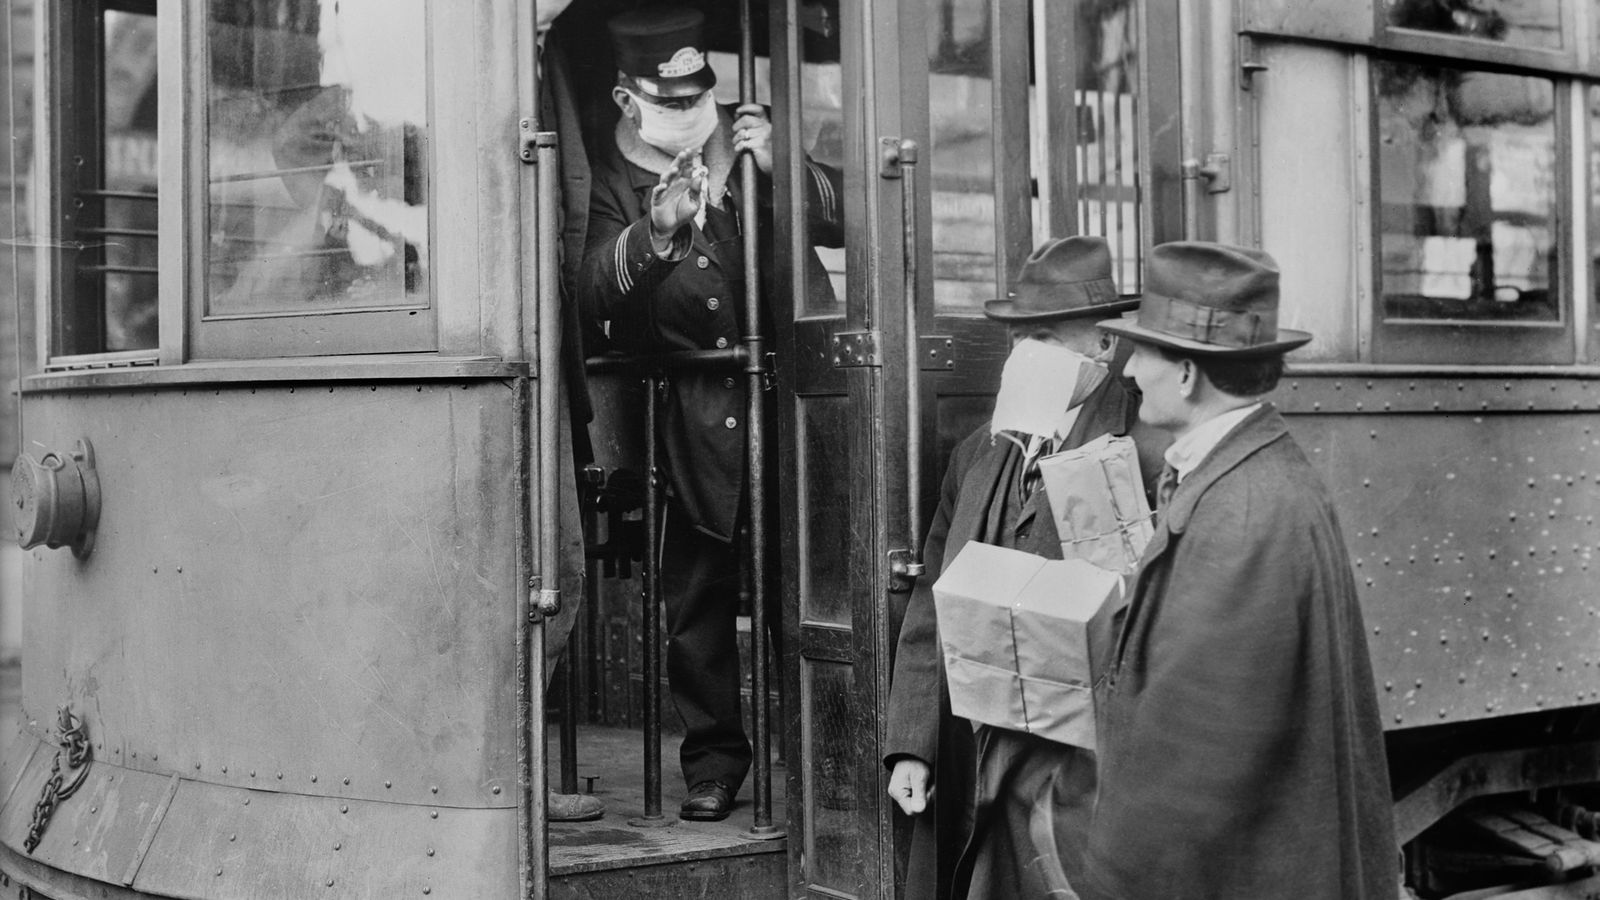 To slow the spread of the 1918 influenza pandemic, all street car riders were required to ...